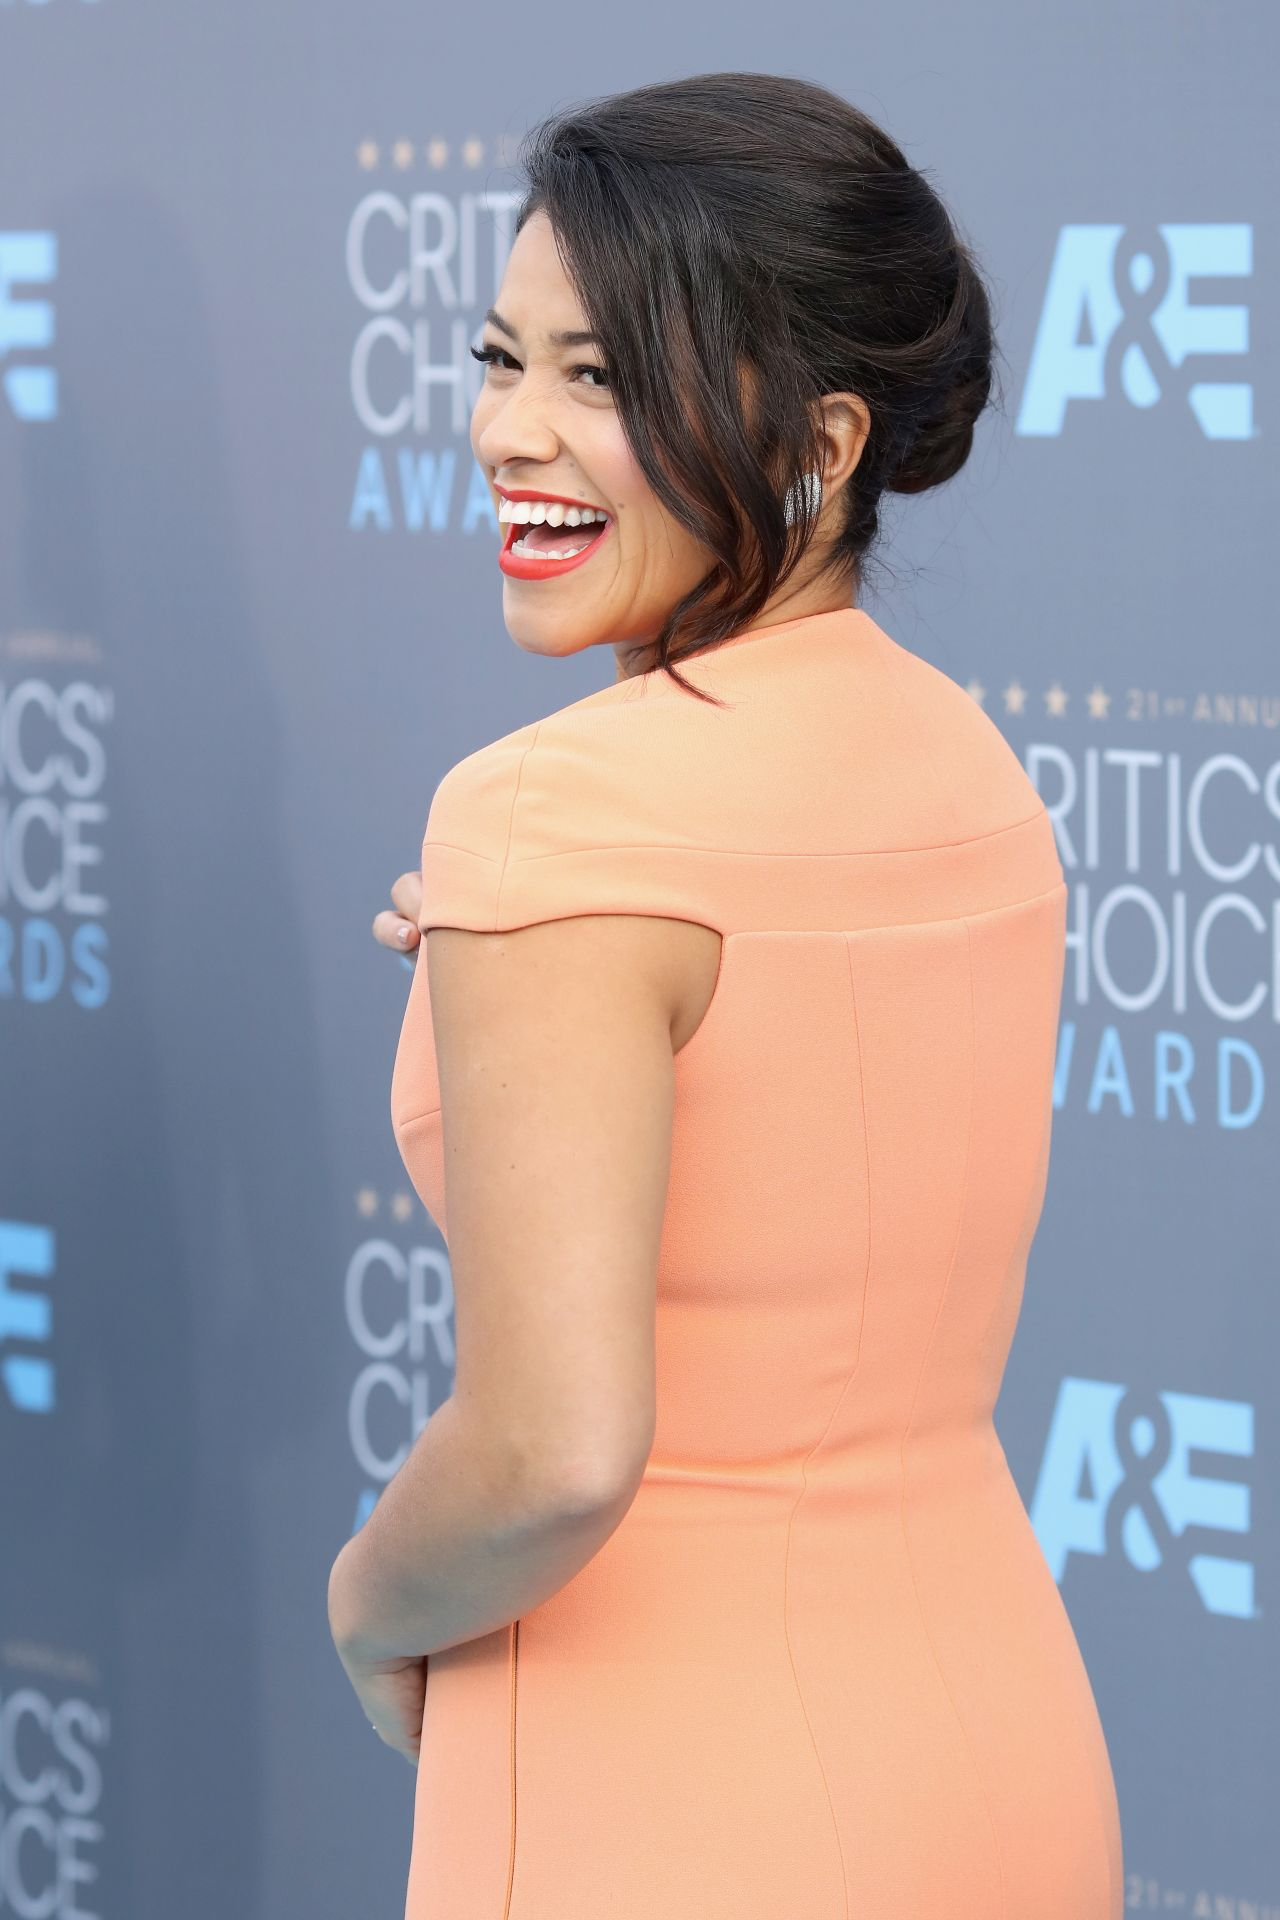 gina-rodriguez-2016-critics-choice-awards-in-santa-monica-8